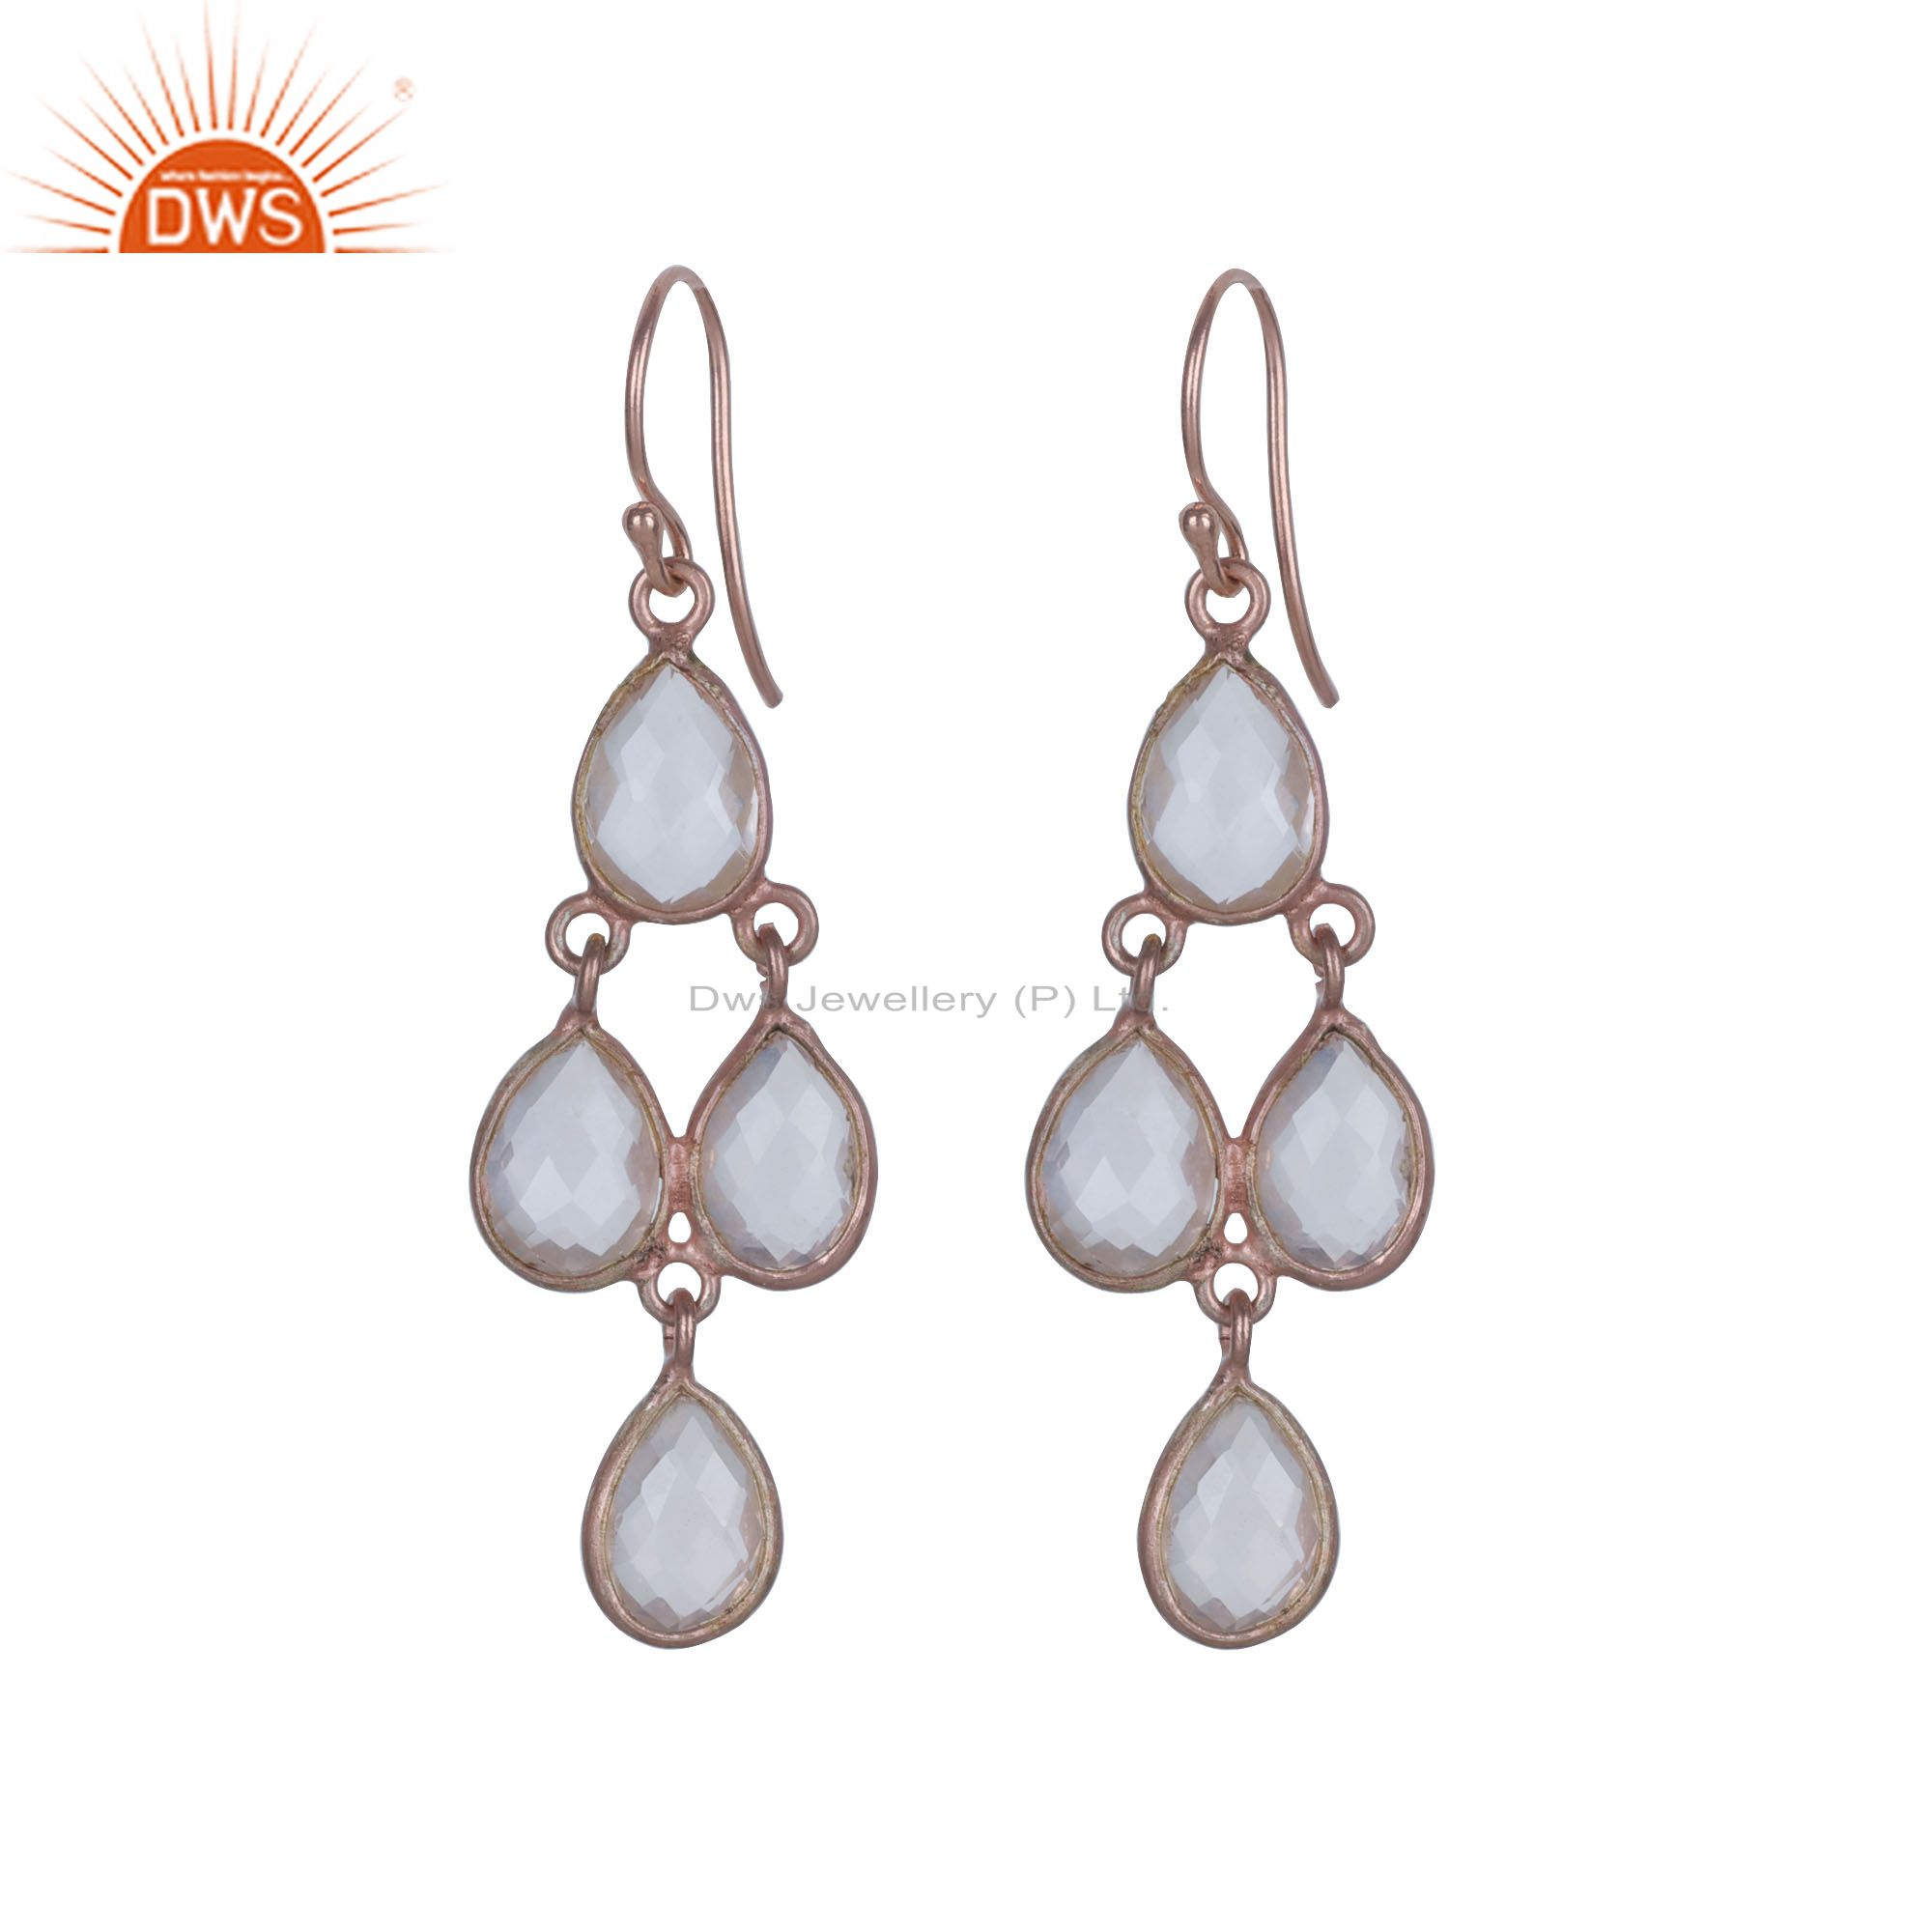 18K Rose Gold Plated Sterling Silver White Chalcedony Drop Chandelier Earrings